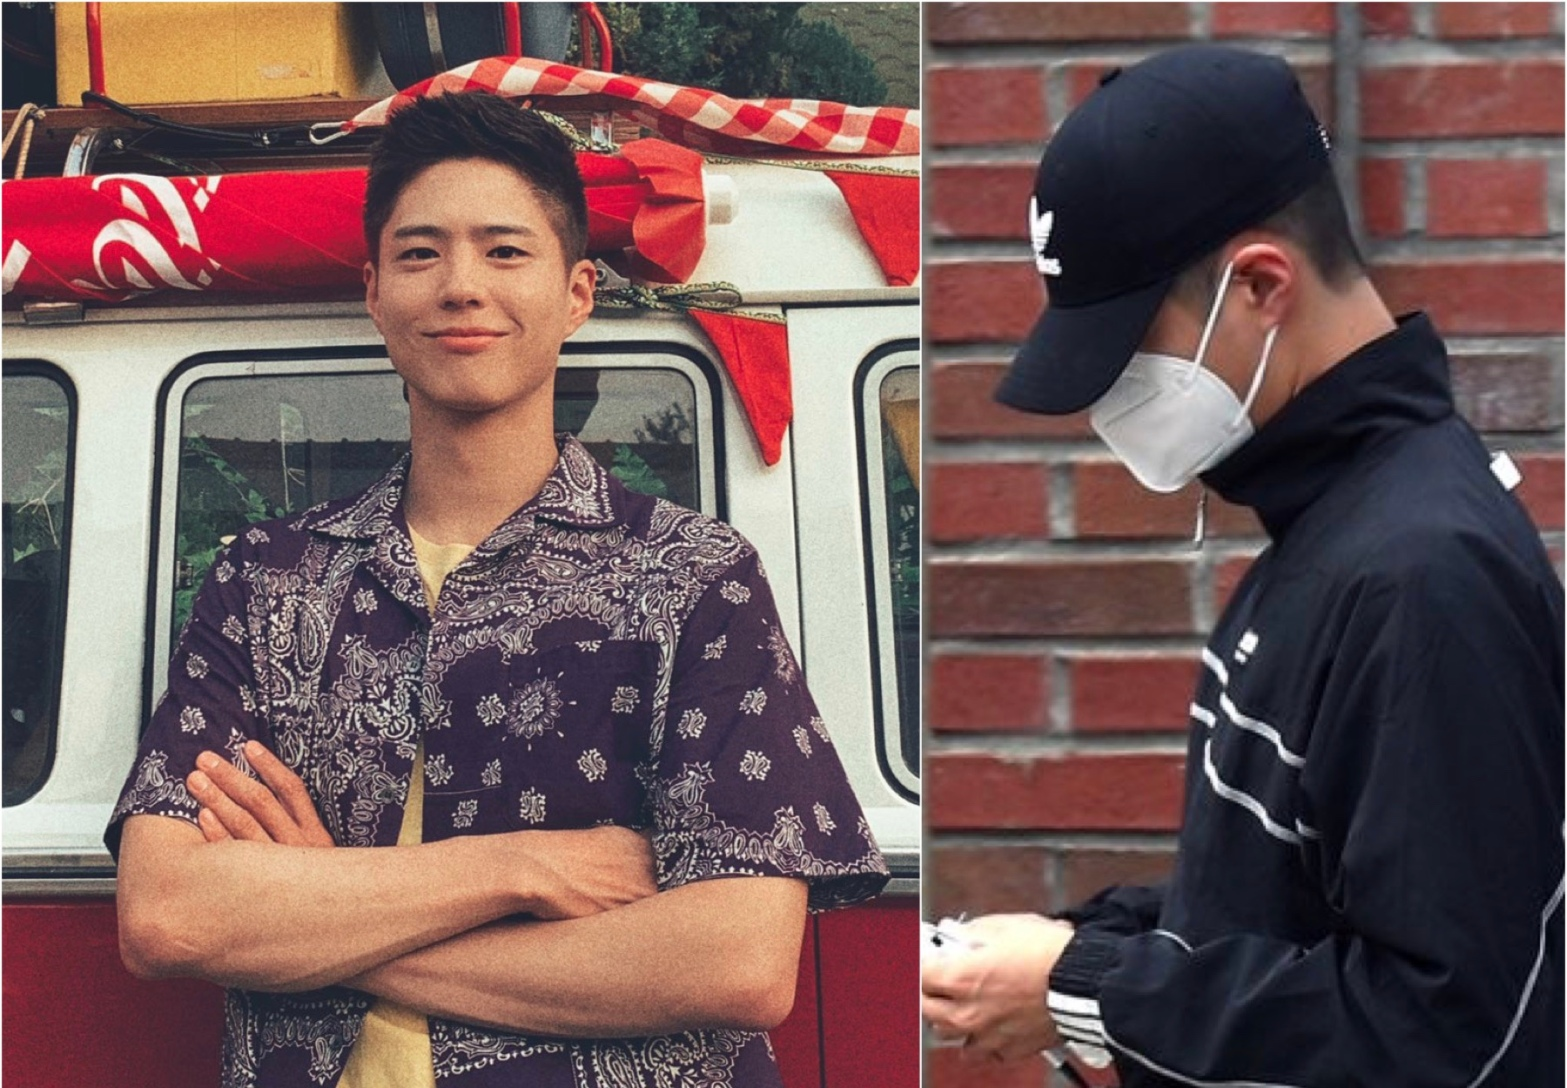 Park Bo Gum enlisting to the navy on 31 Aug 2020.